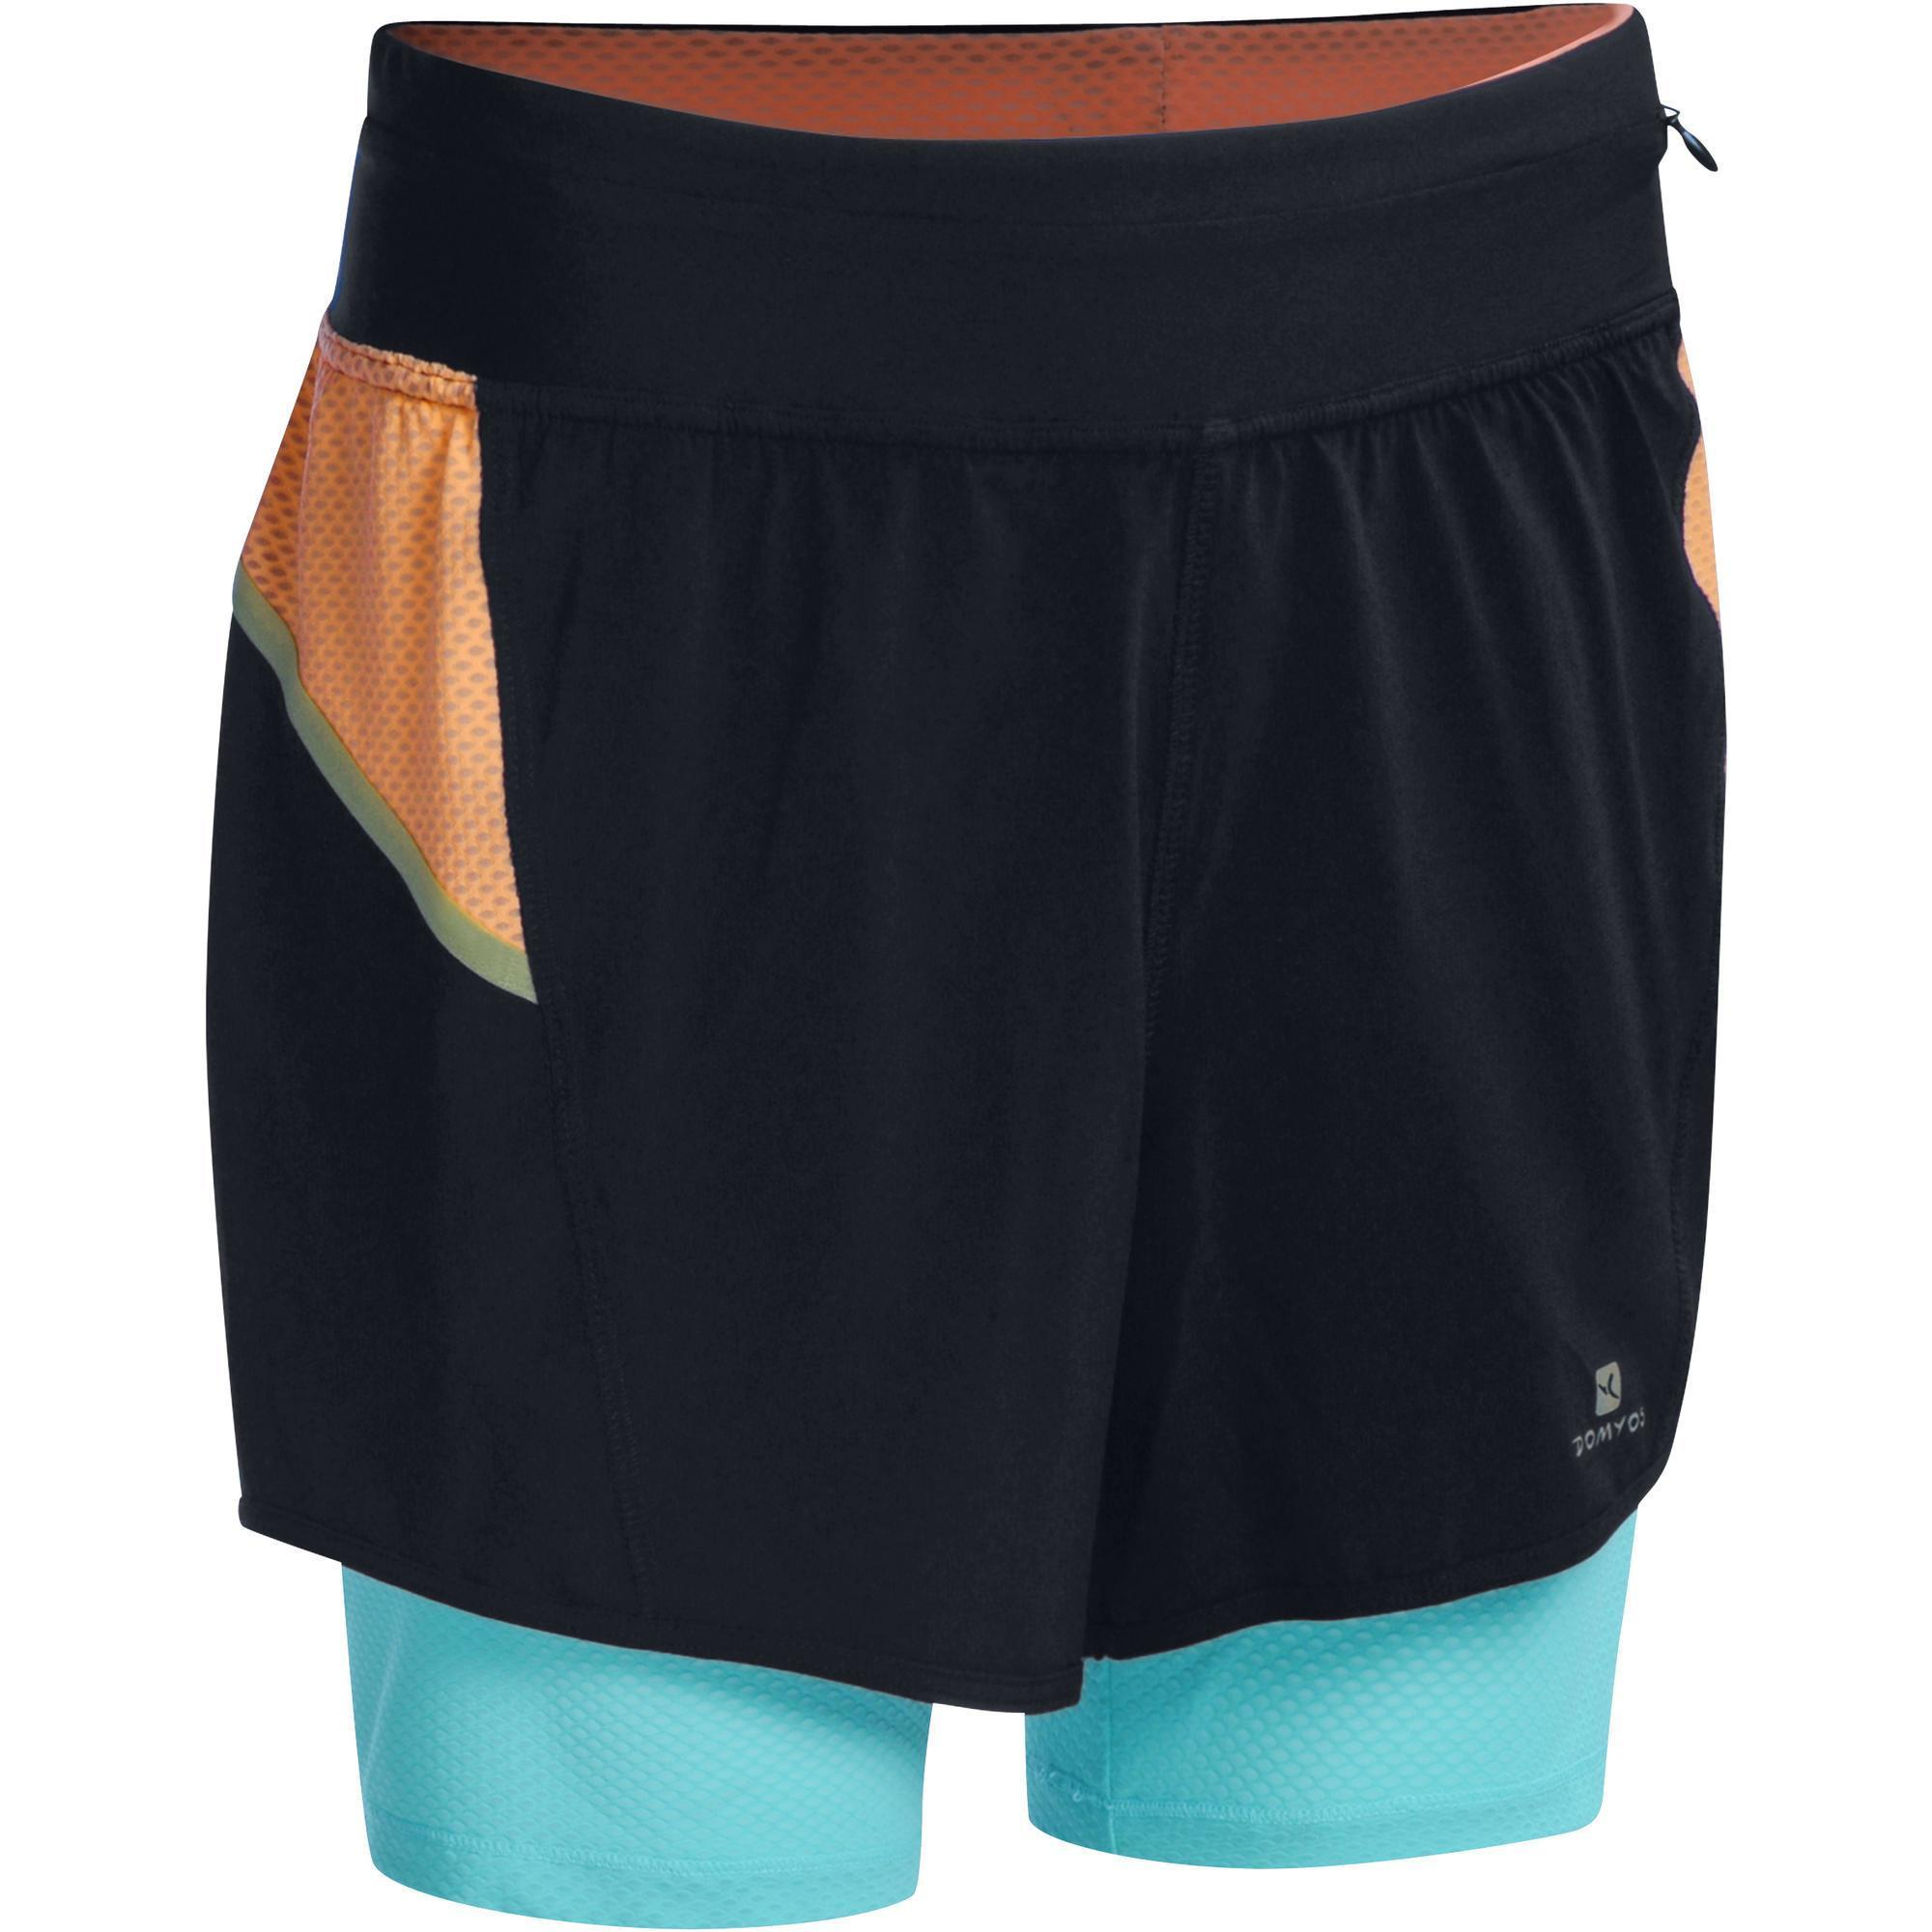 Short 2 en 1 respirant cardio femme orange et bleu energy - Tapis de course energetics power run 4 0 ...